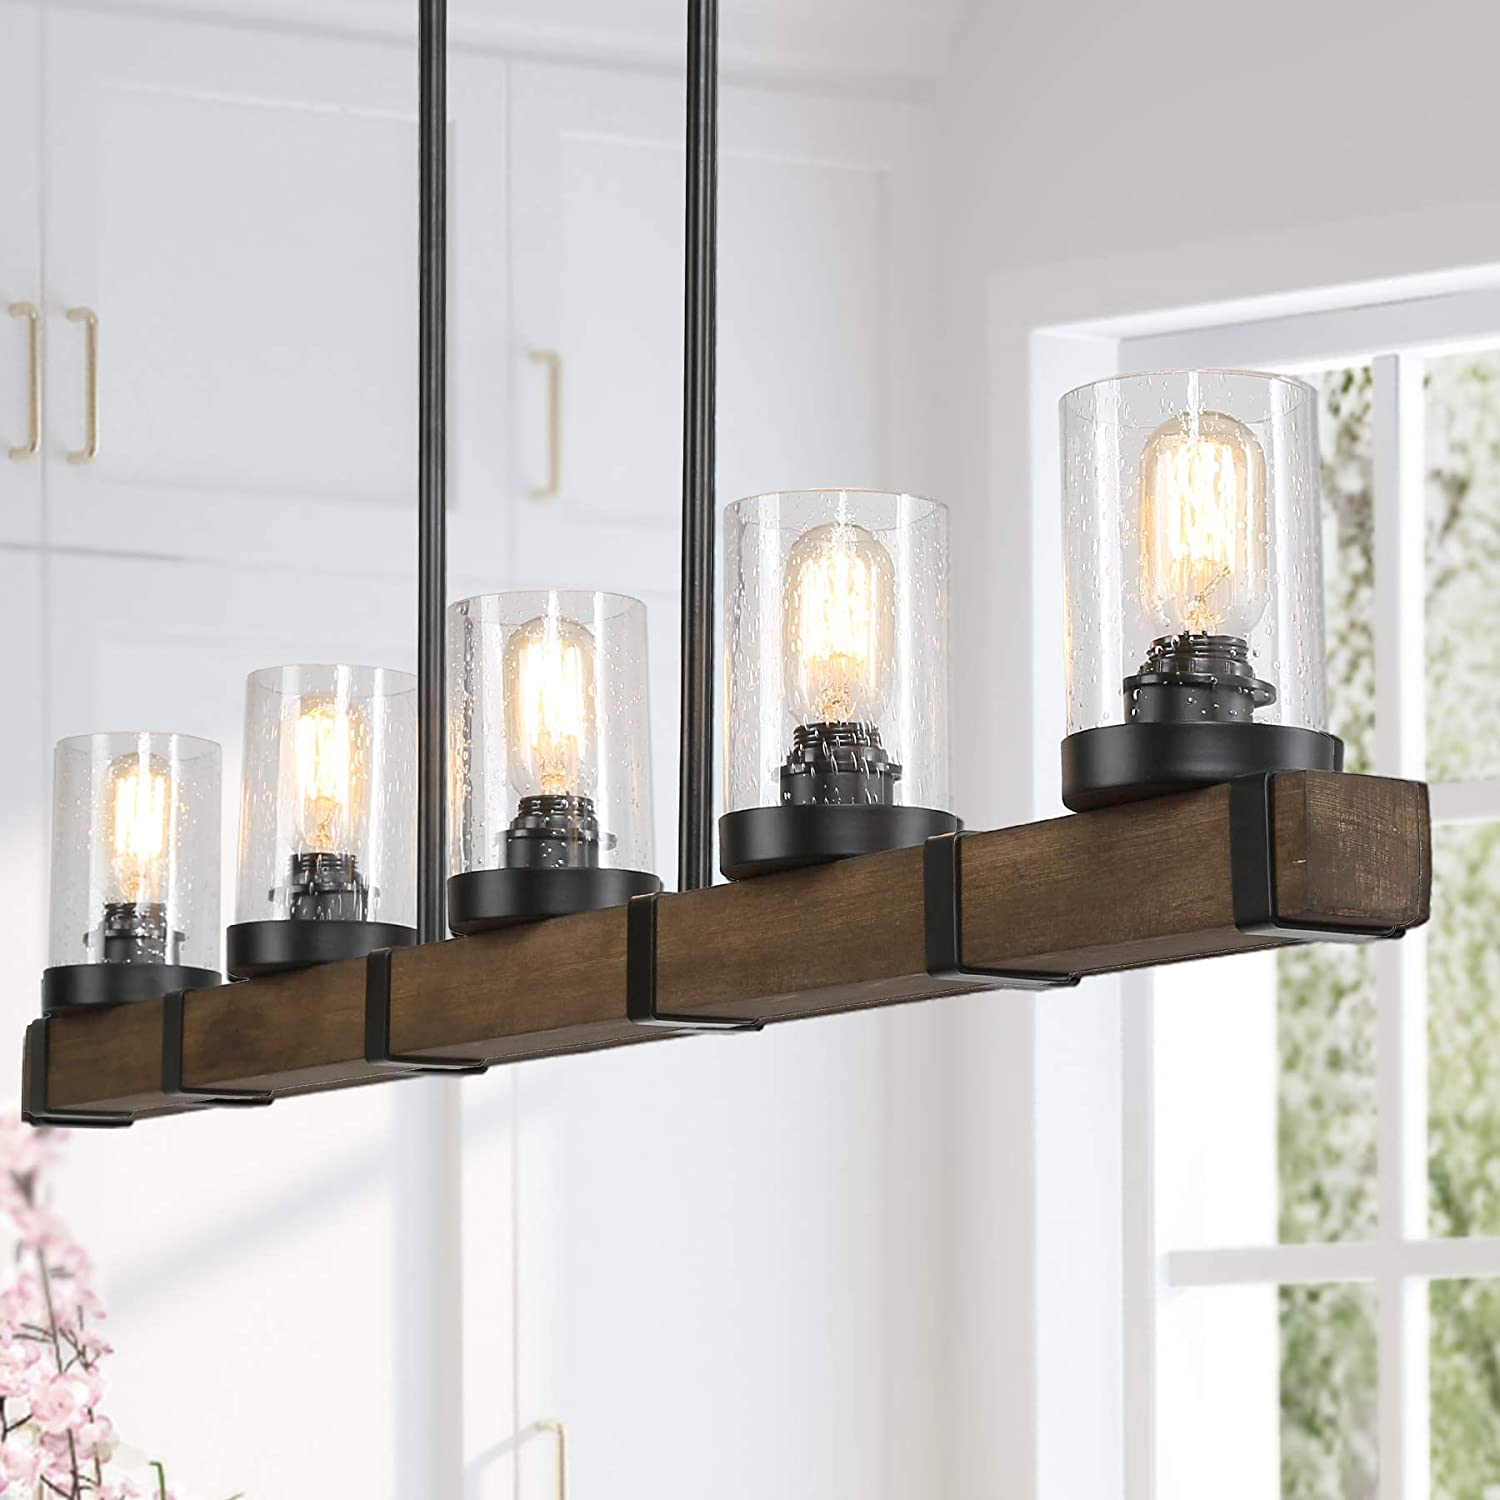 Farmhouse Chandeliers For Dining Room 5 Lights Kitchen Island Lighting Rectangle Wood Chandeliers With Seedy Glass Shape Amazon Com